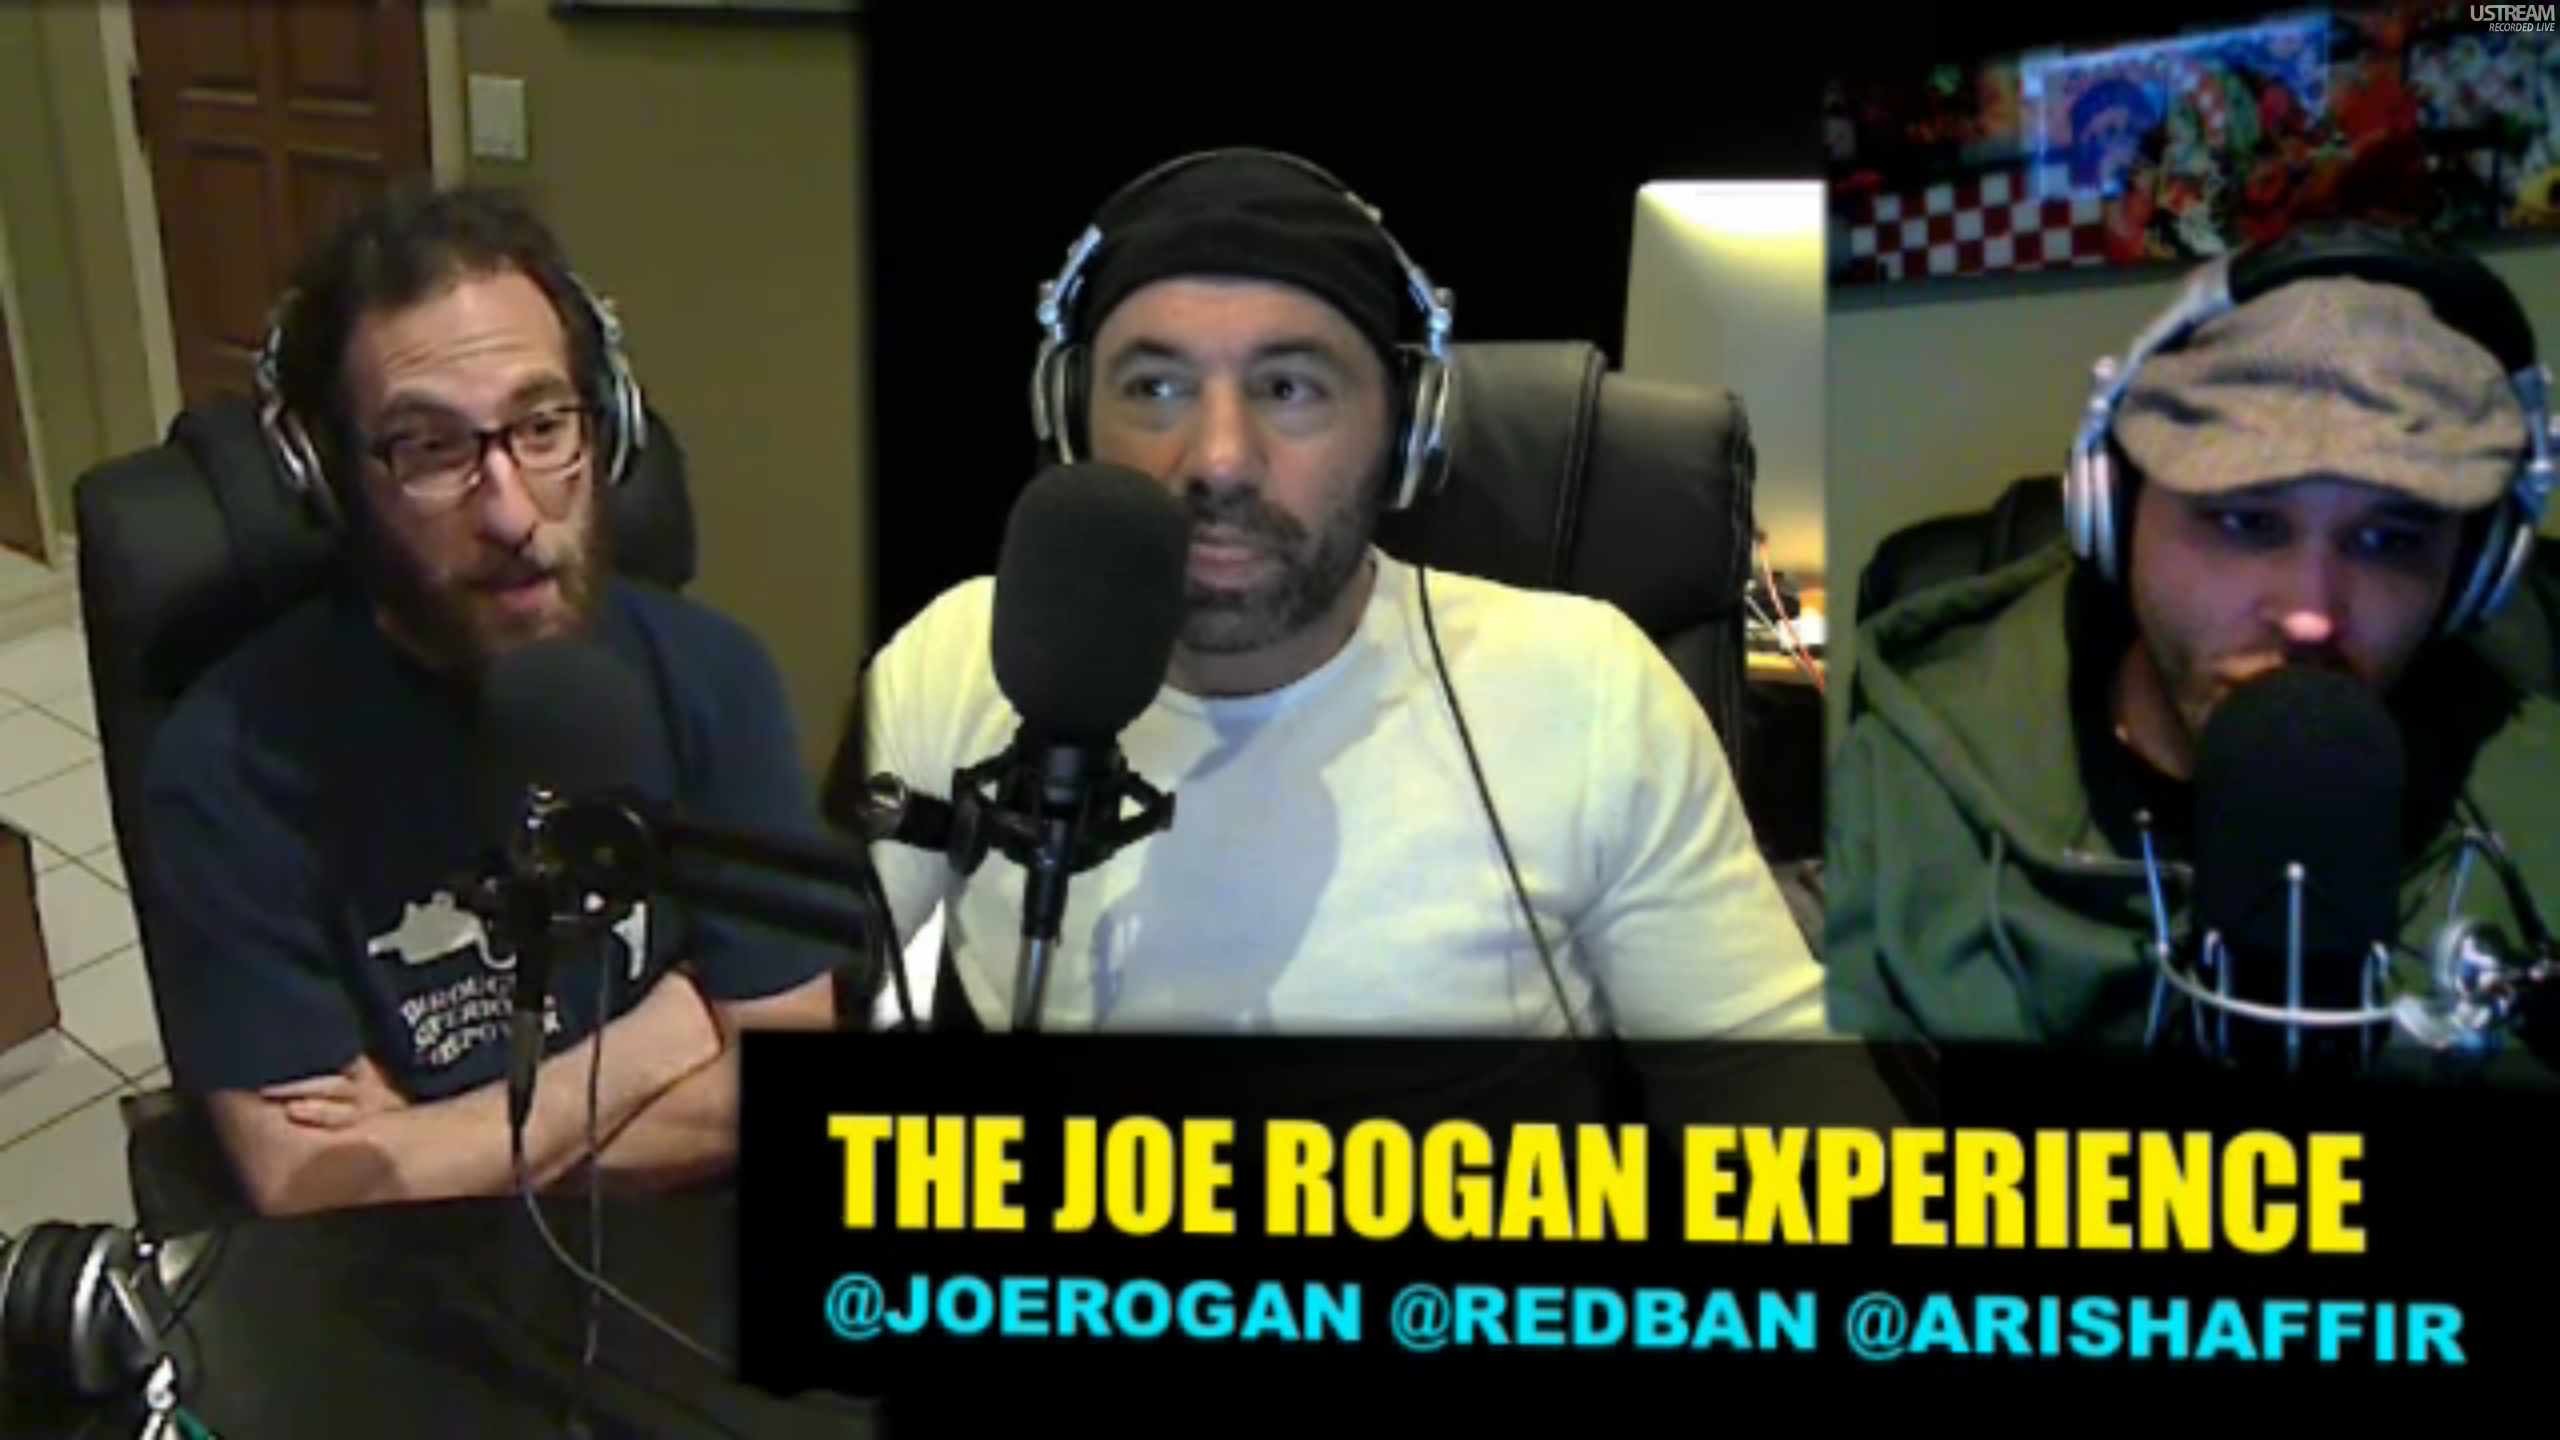 The Joe Rogan Experience PODCAST #186 - Ari Shaffir, Brian Redban